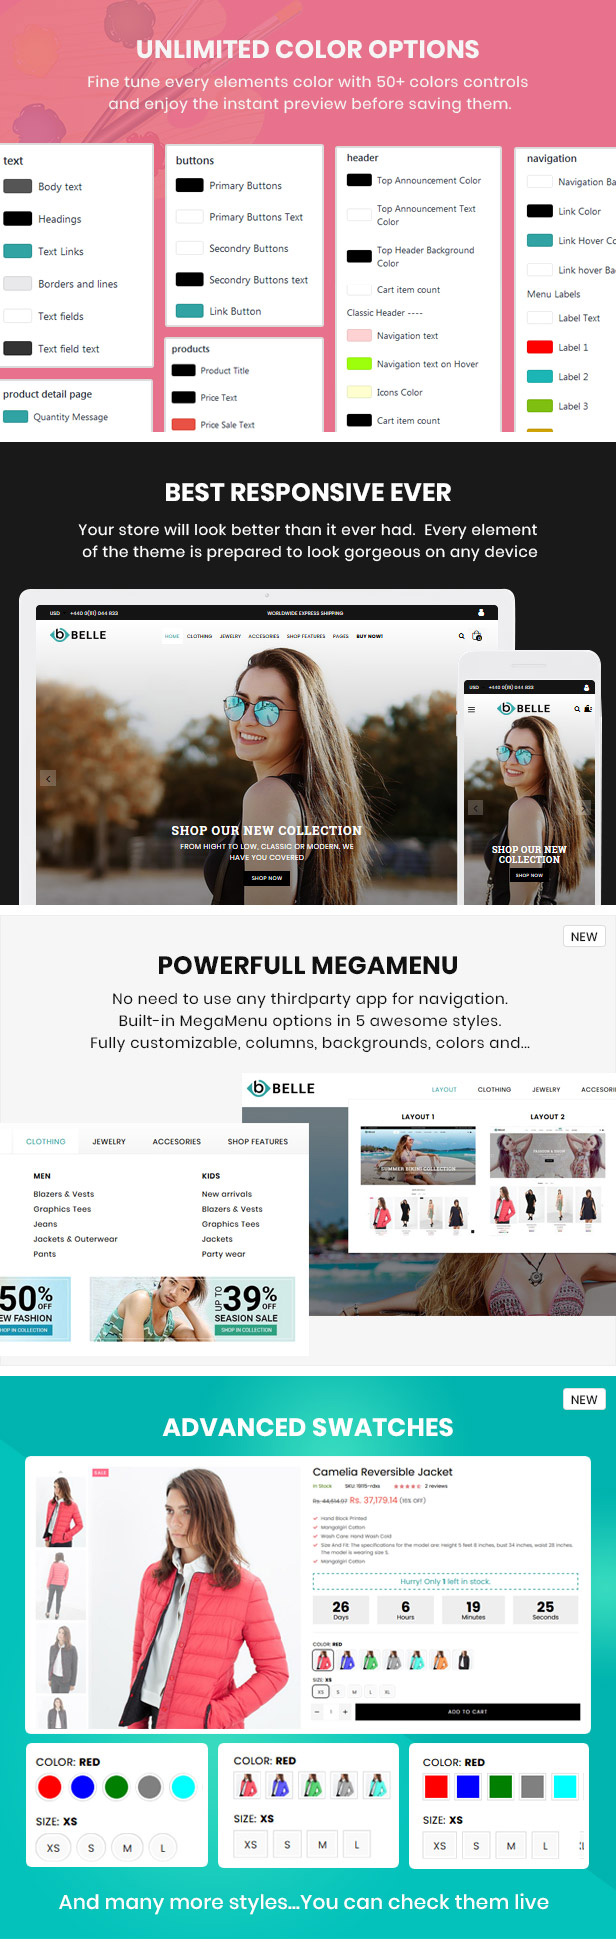 preview 5 - Belle - Clothing and Fashion Shopify Theme